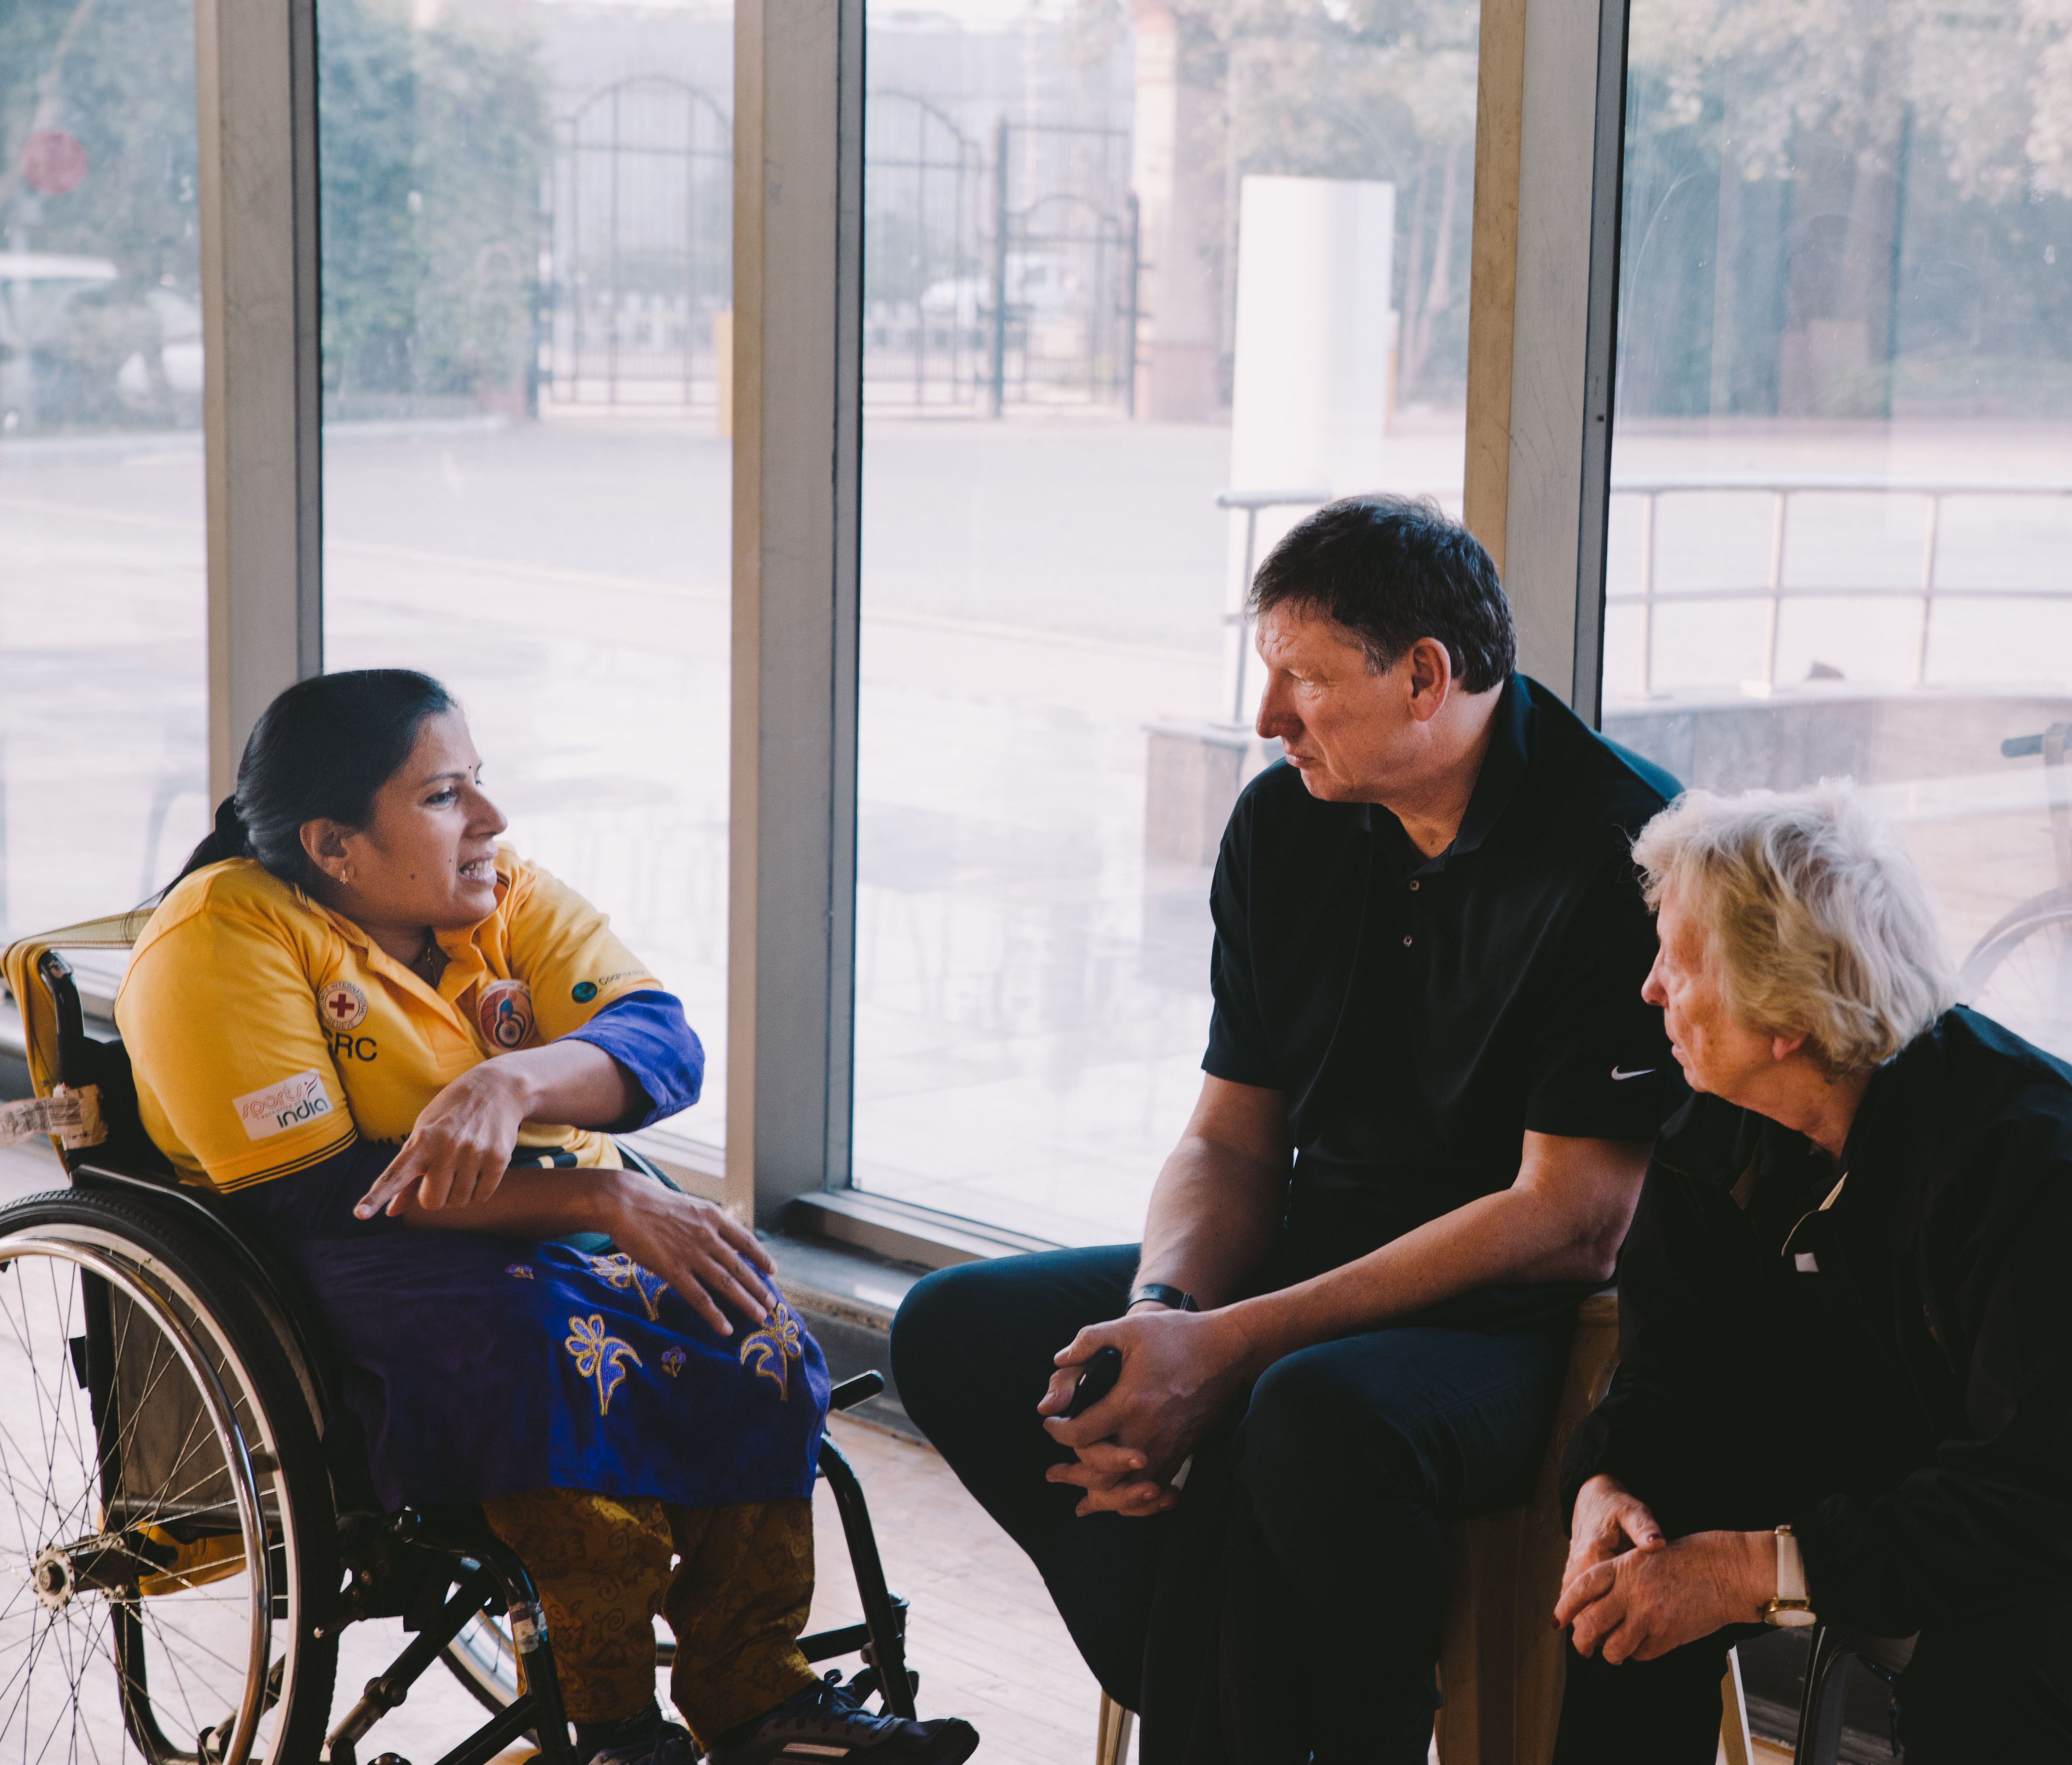 Madhavi in a discussion with the President- Mr.Ulf Mehrens and the Secretary General- Ms.Maureen Orchard from the IWBF.